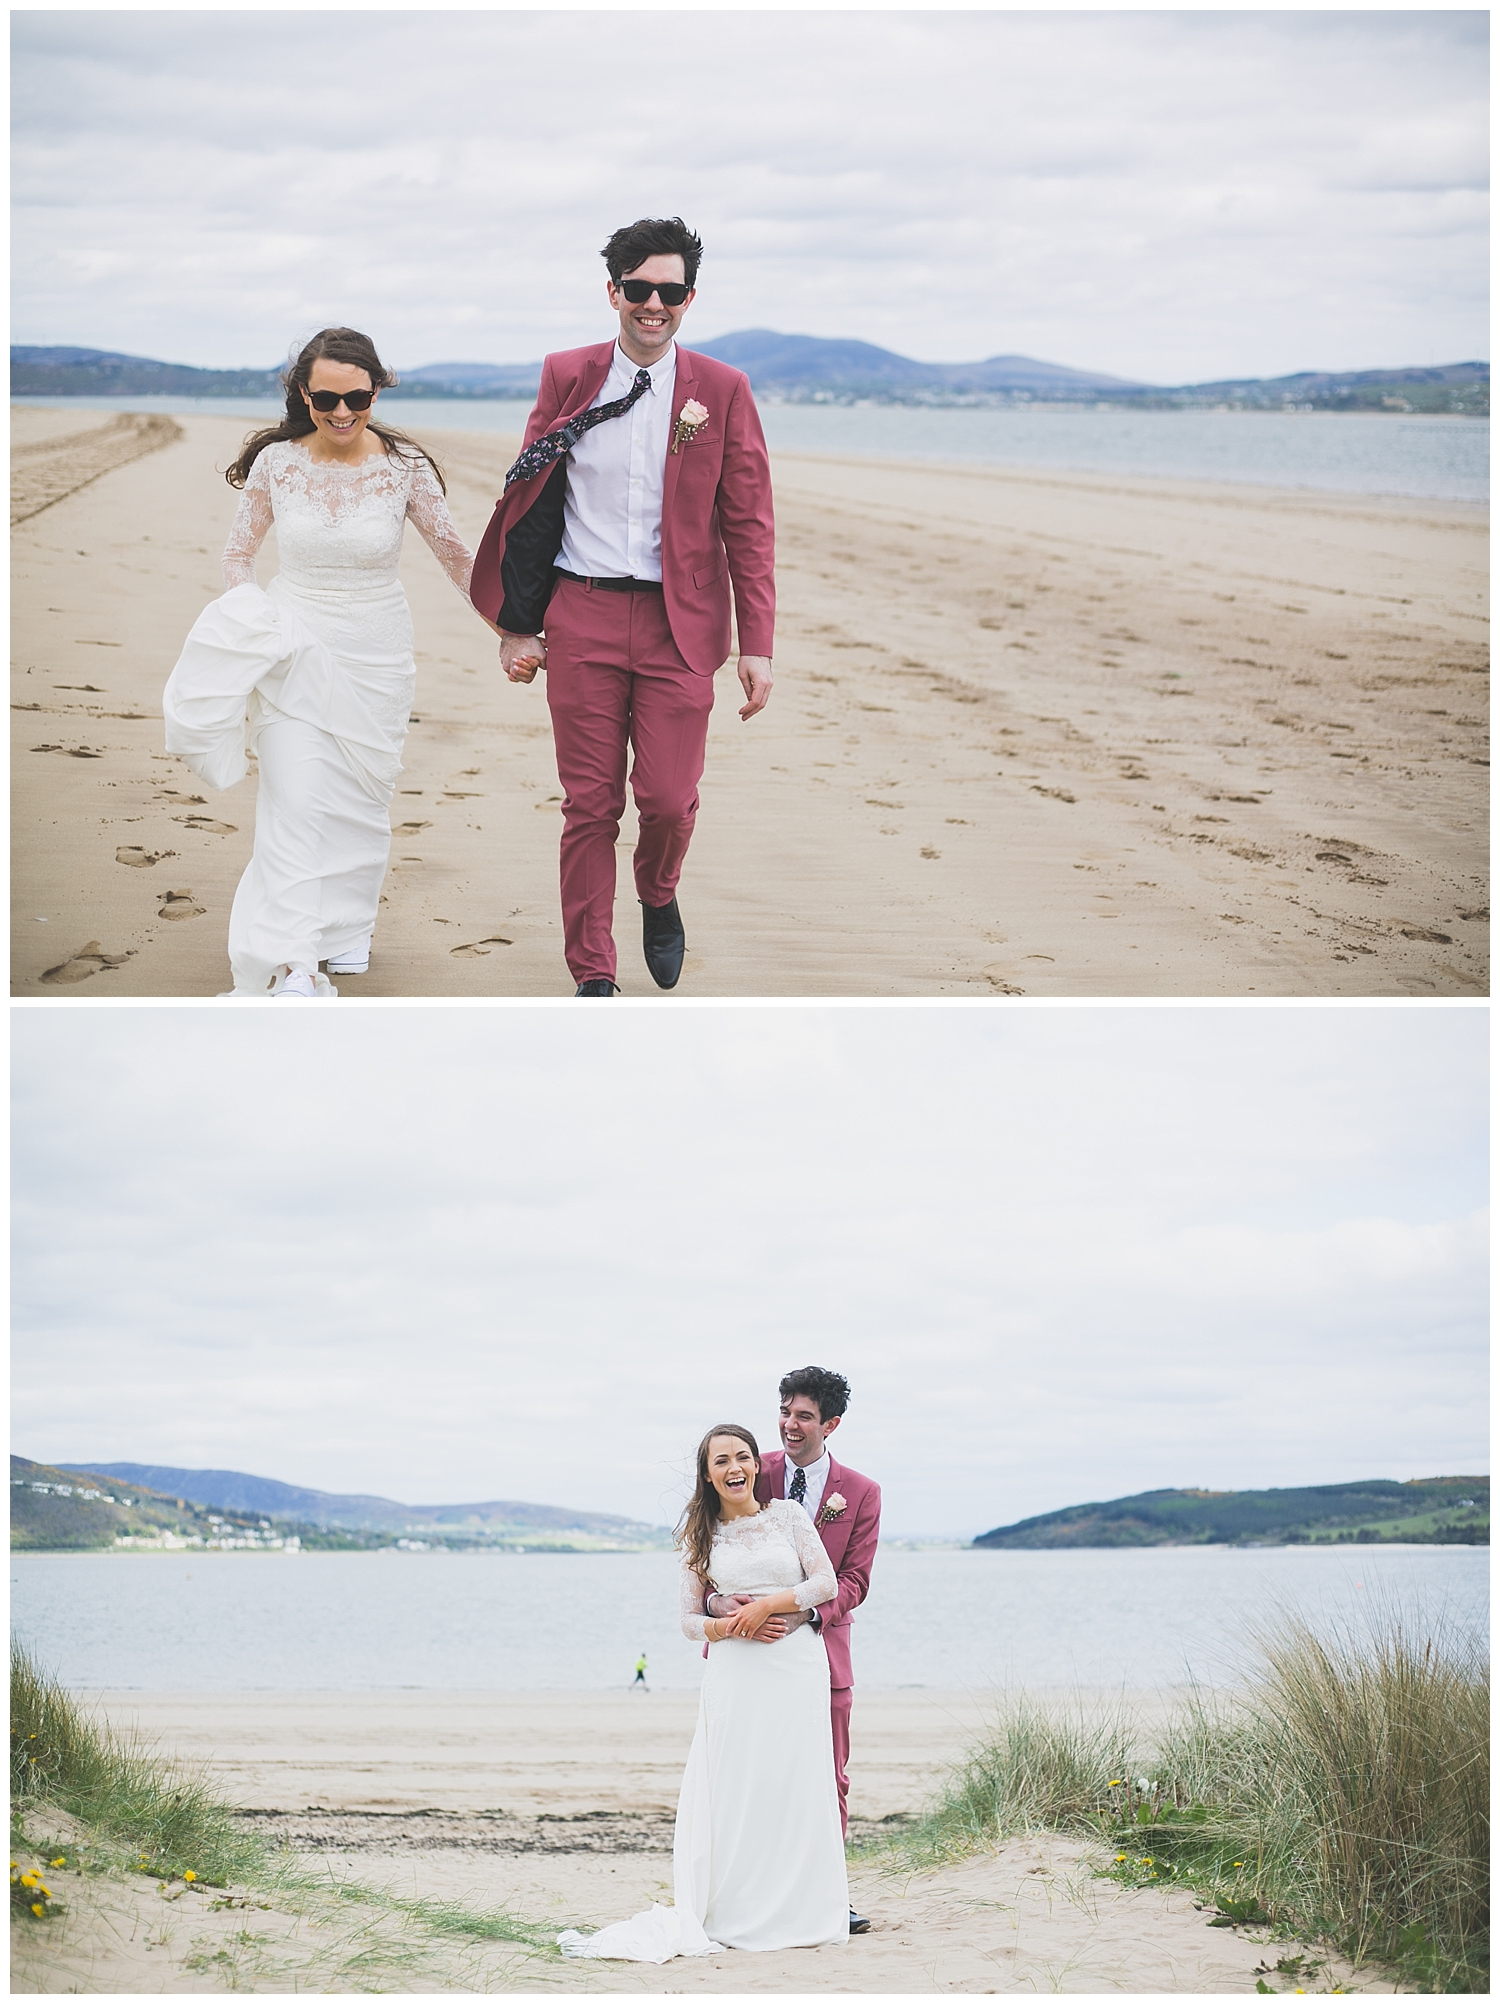 Fun wedding day portraits at the seaside in Rathmullan